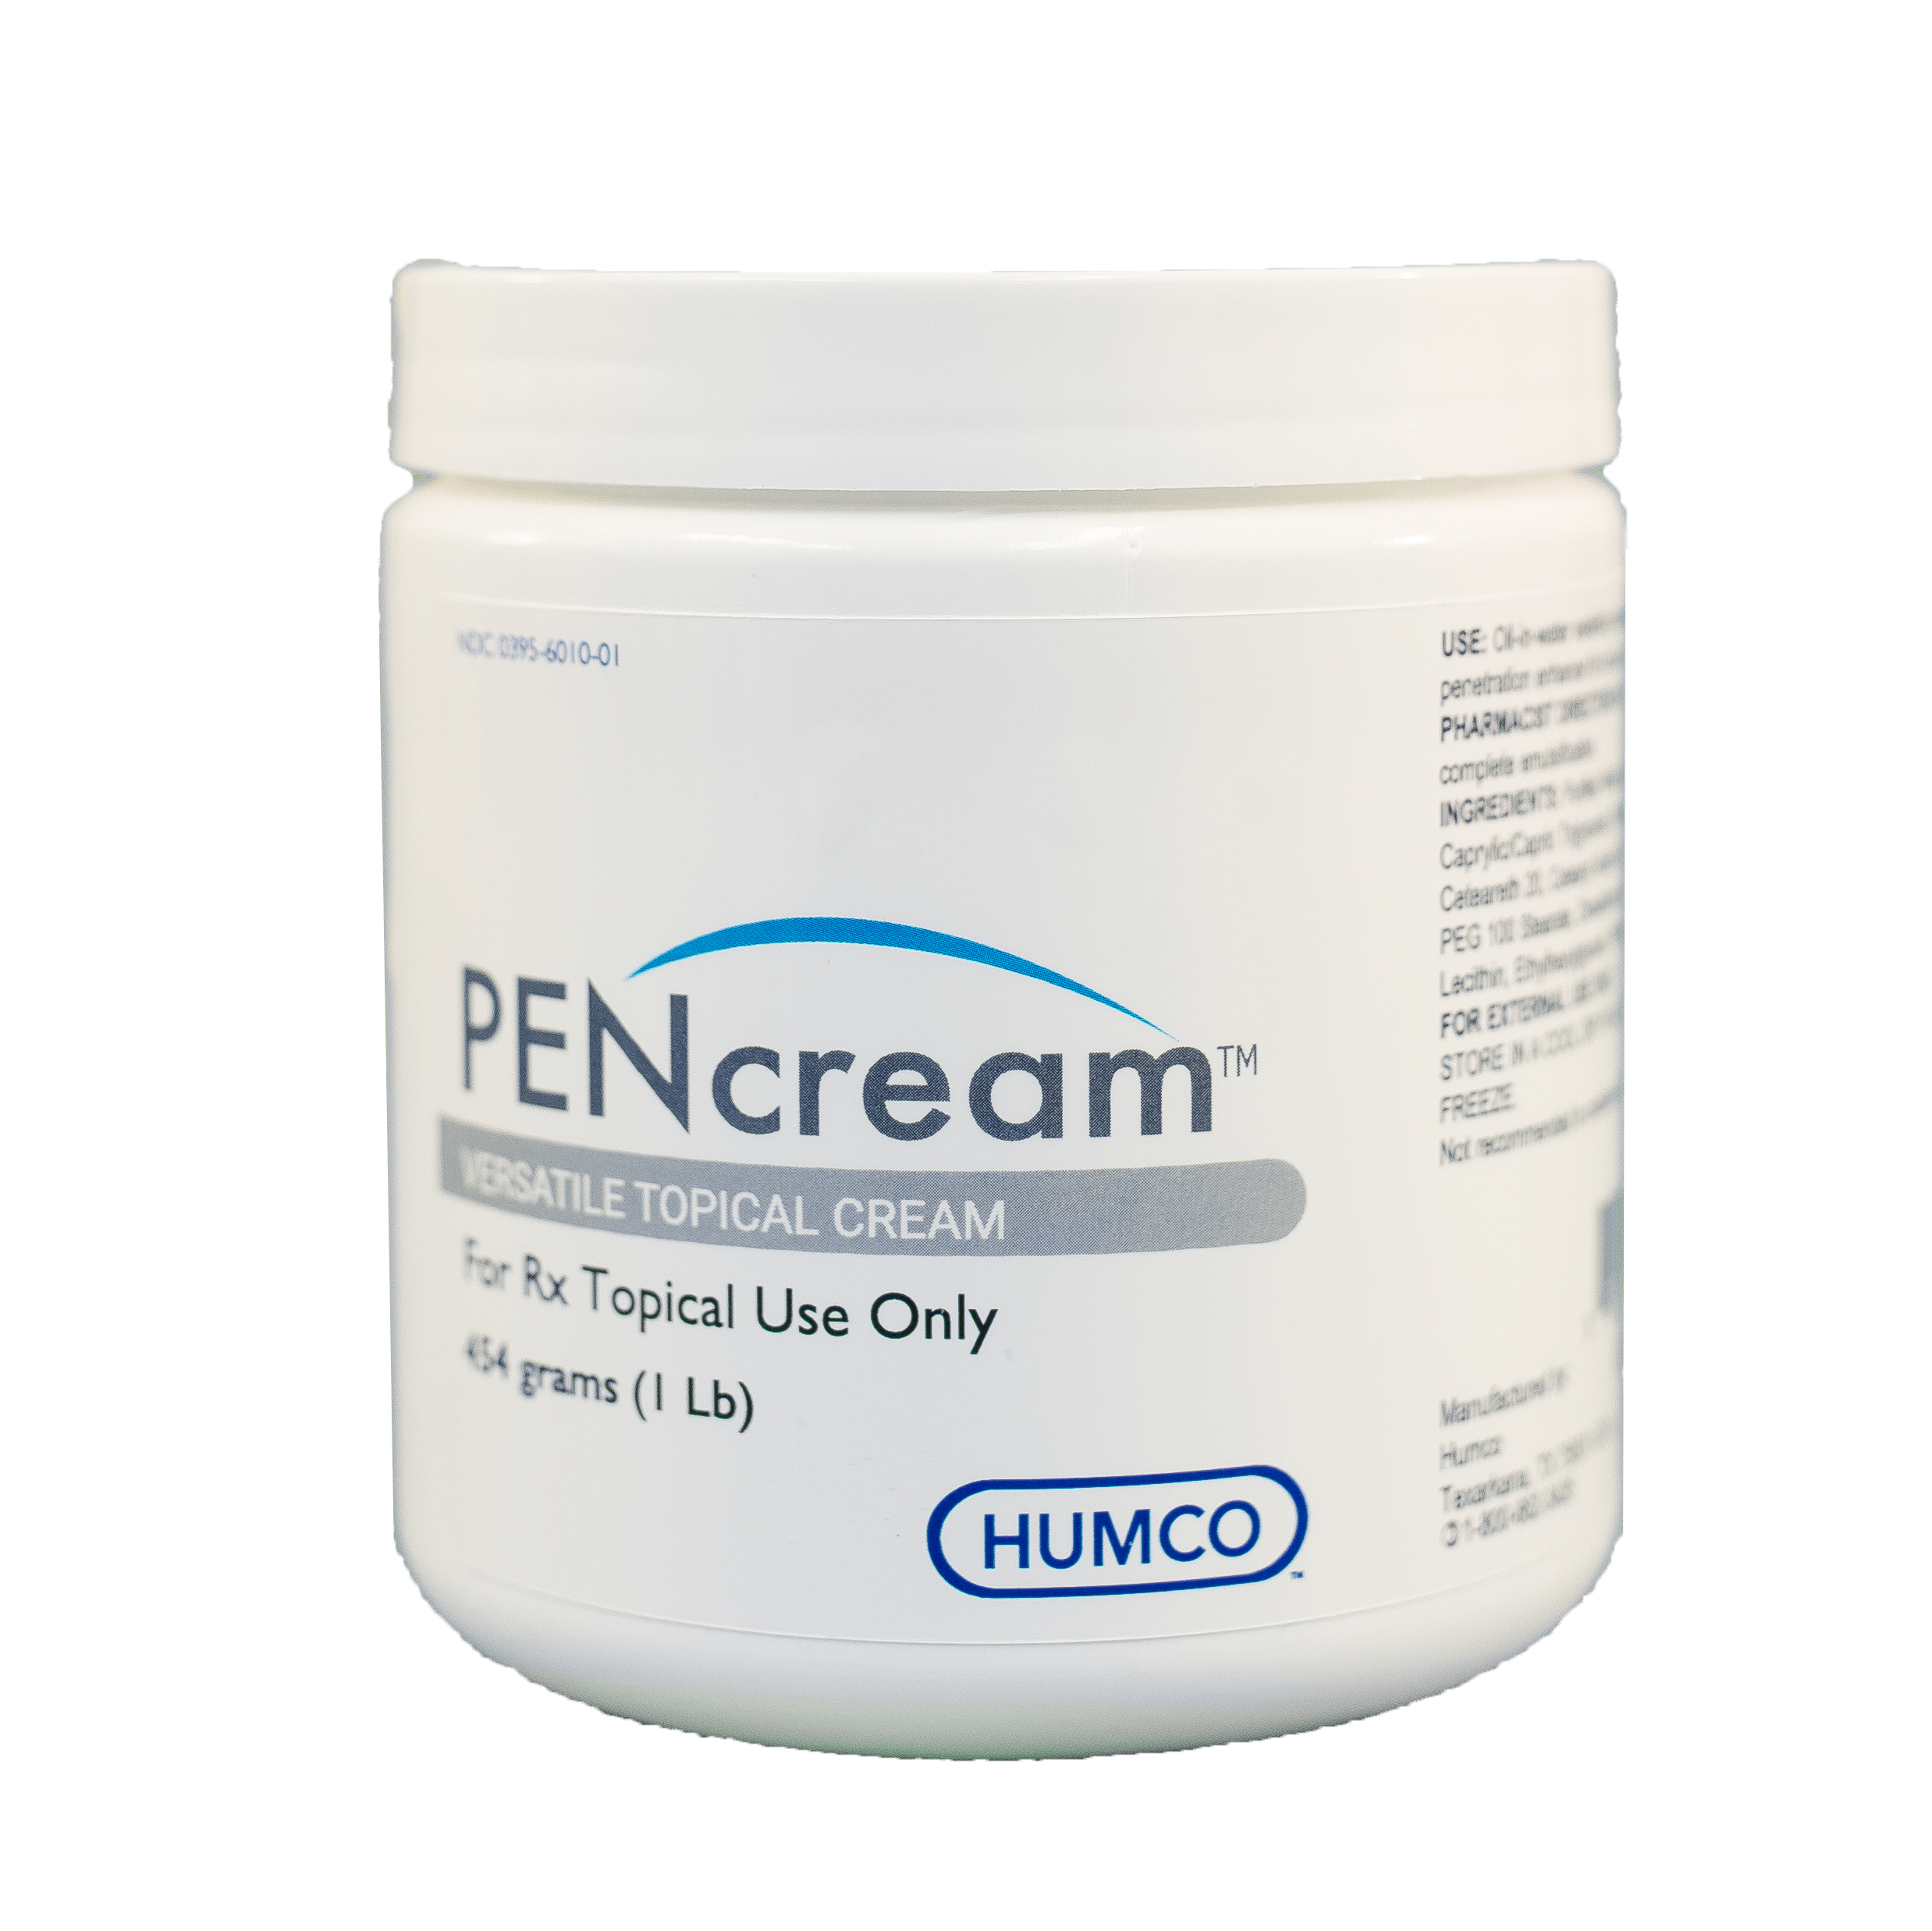 PENcream™